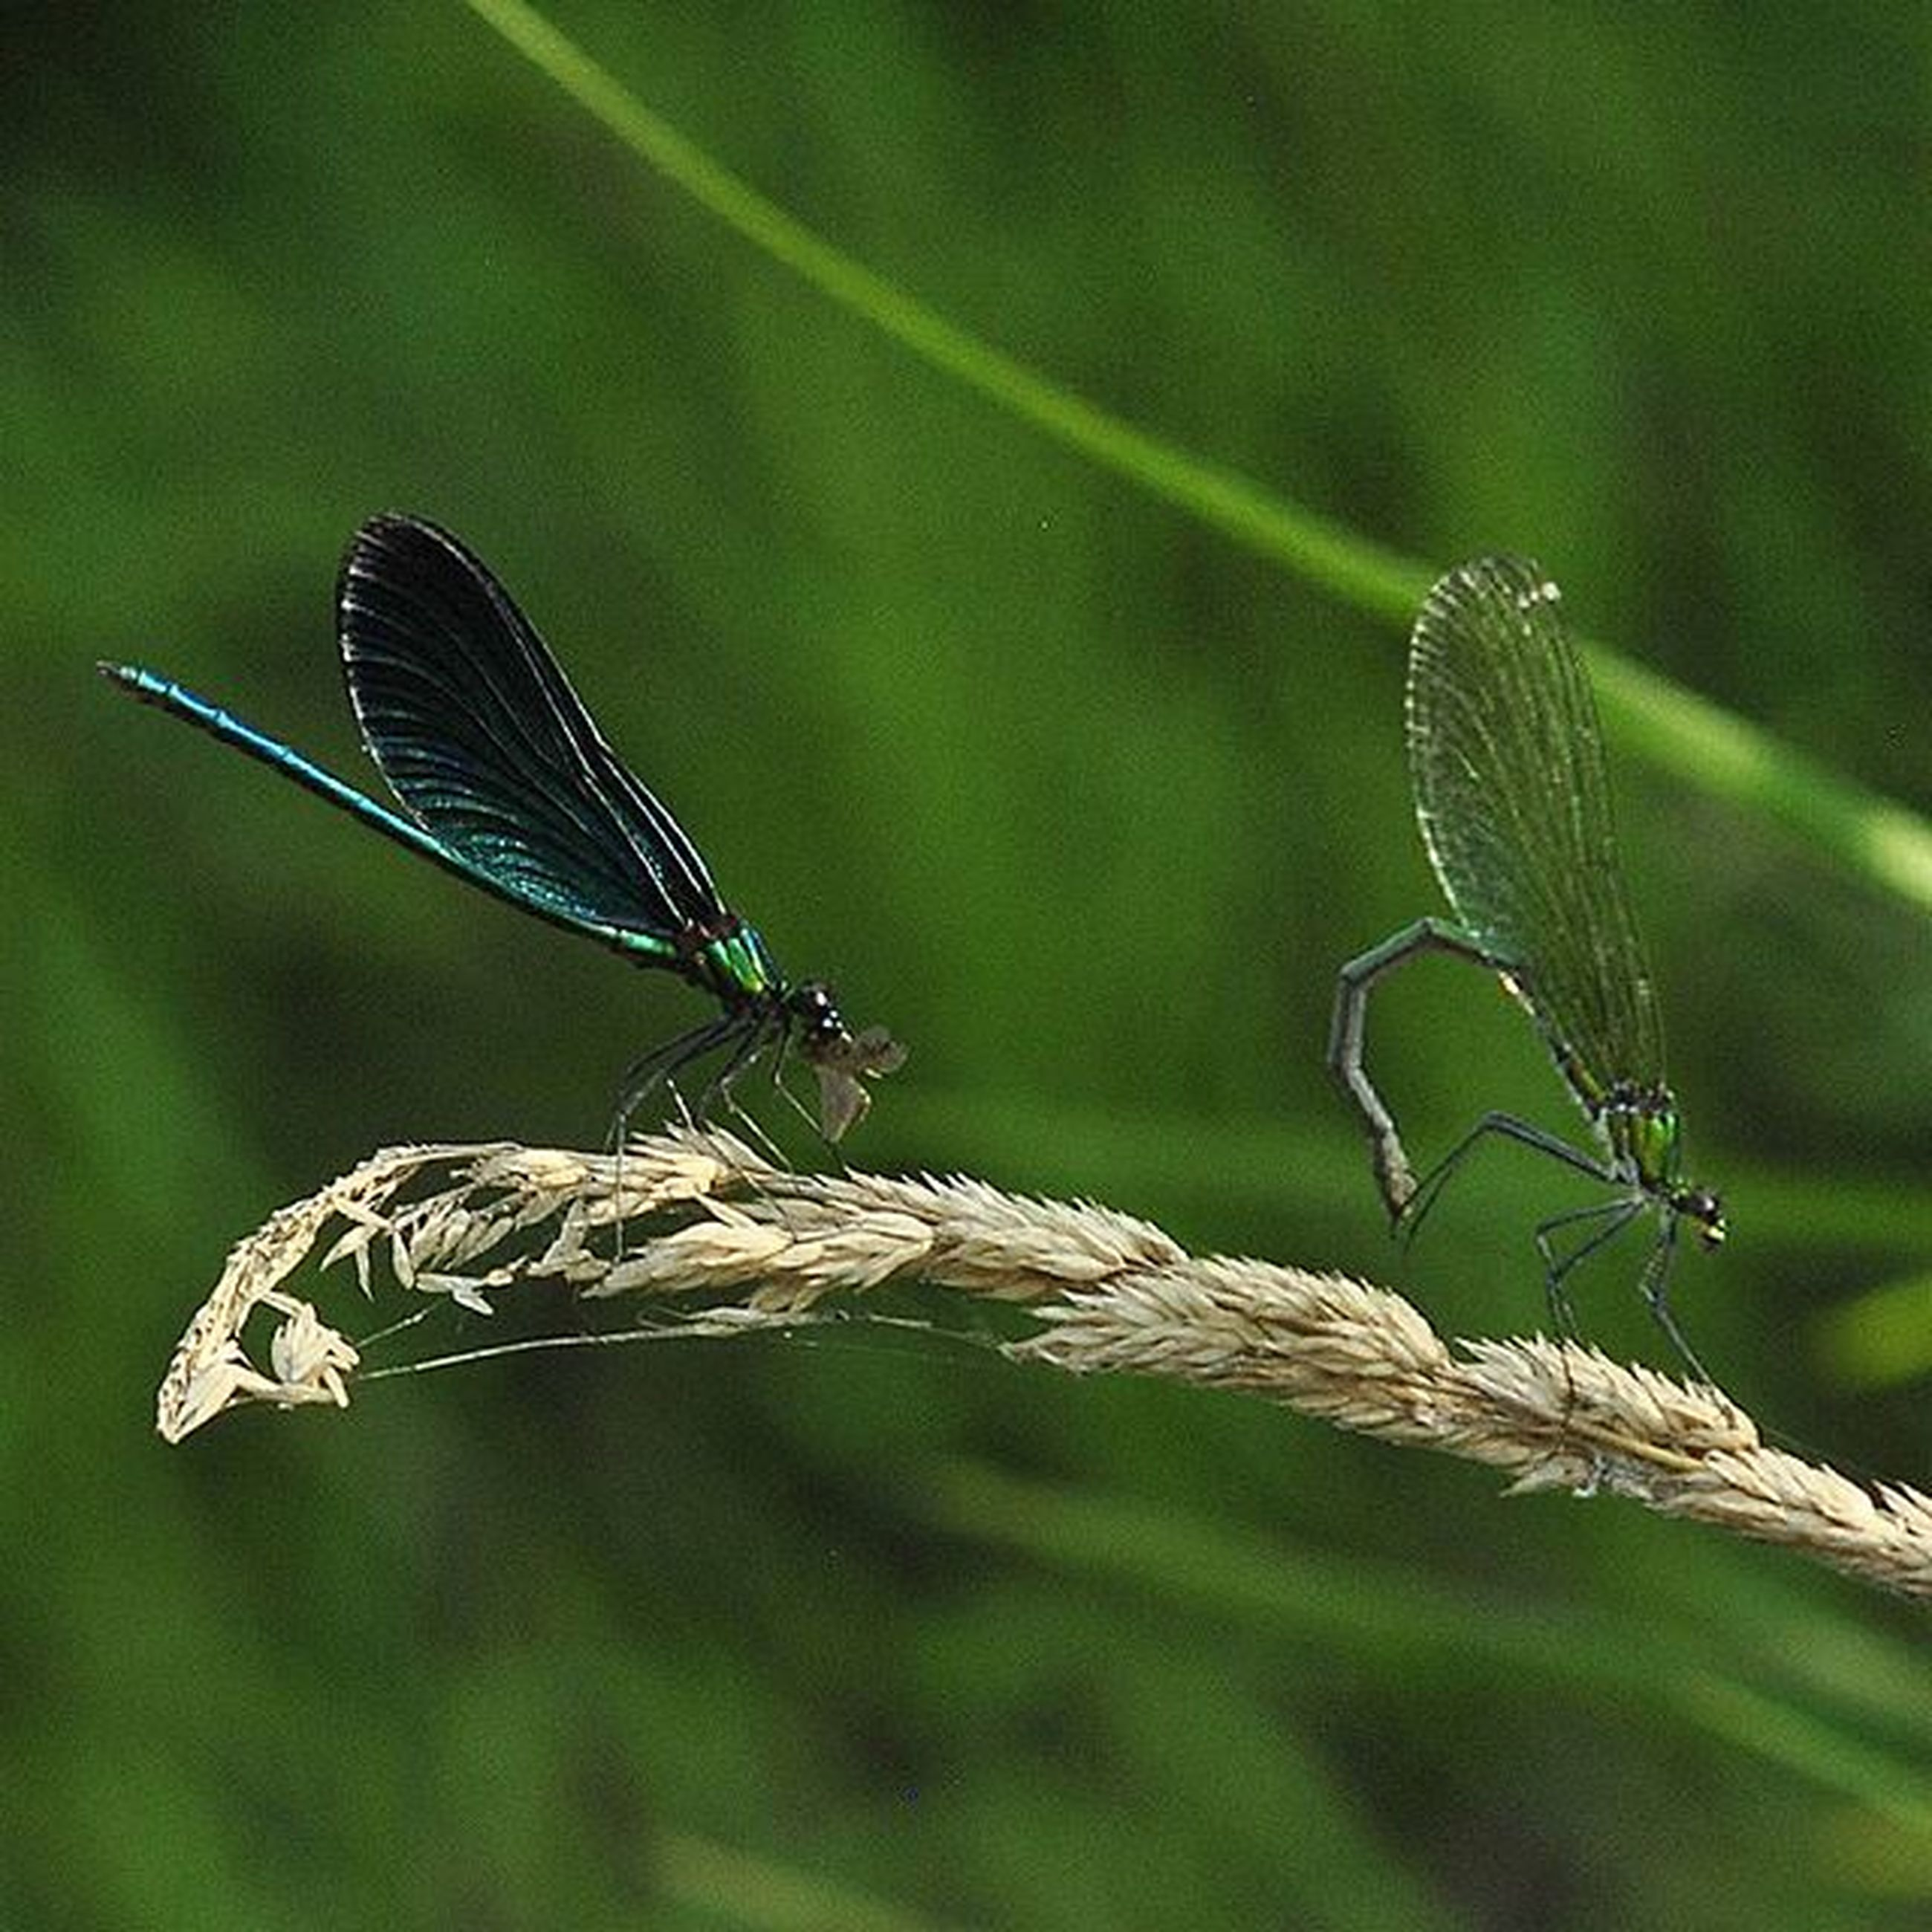 one animal, insect, animal themes, animals in the wild, wildlife, focus on foreground, dragonfly, close-up, plant, animal wing, green color, nature, leaf, twig, day, selective focus, outdoors, perching, butterfly, no people